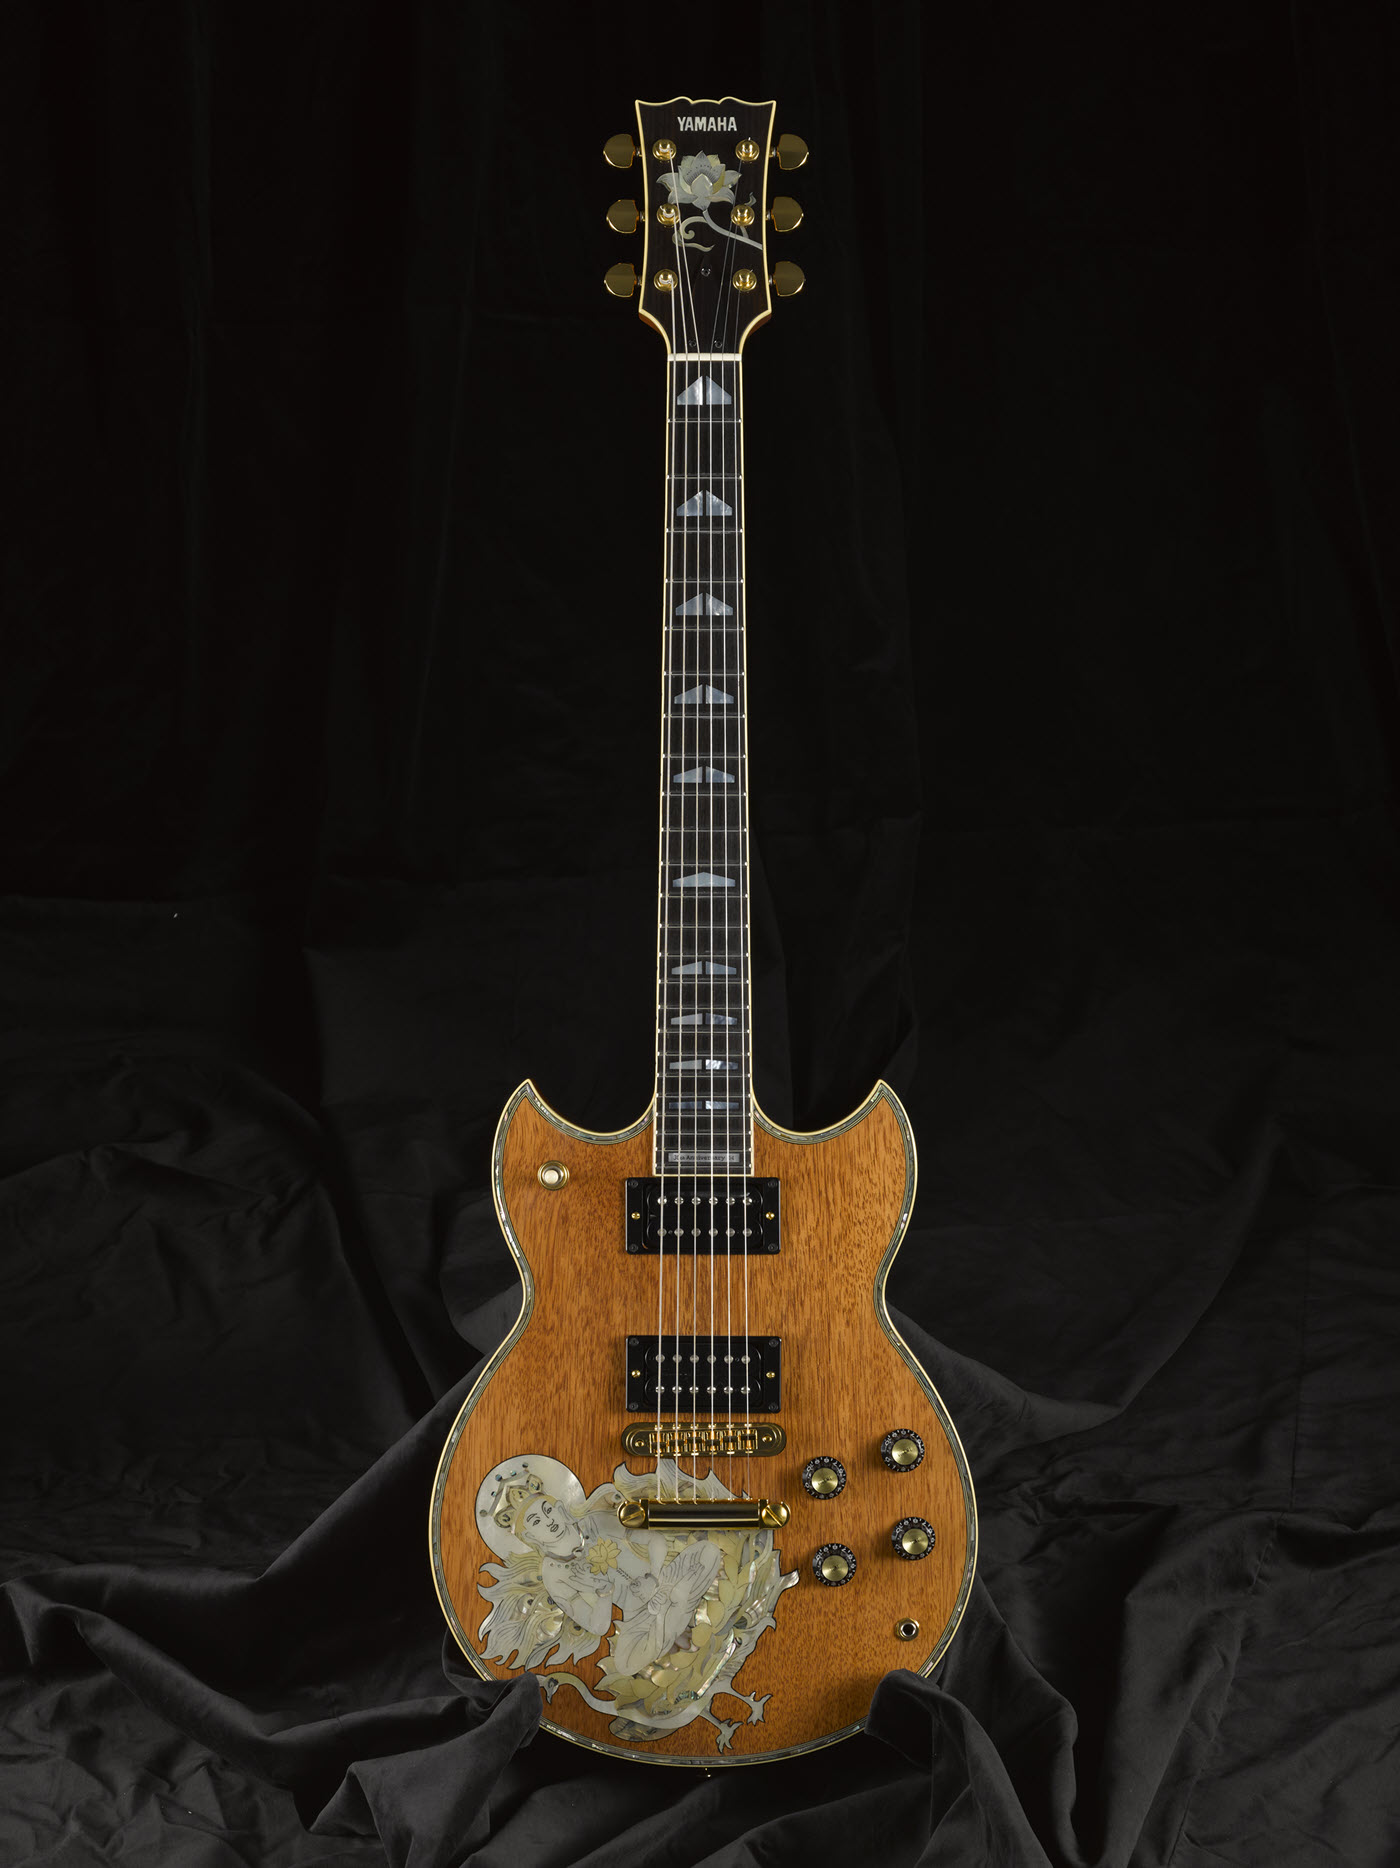 Electric guitar with embellishment on face.